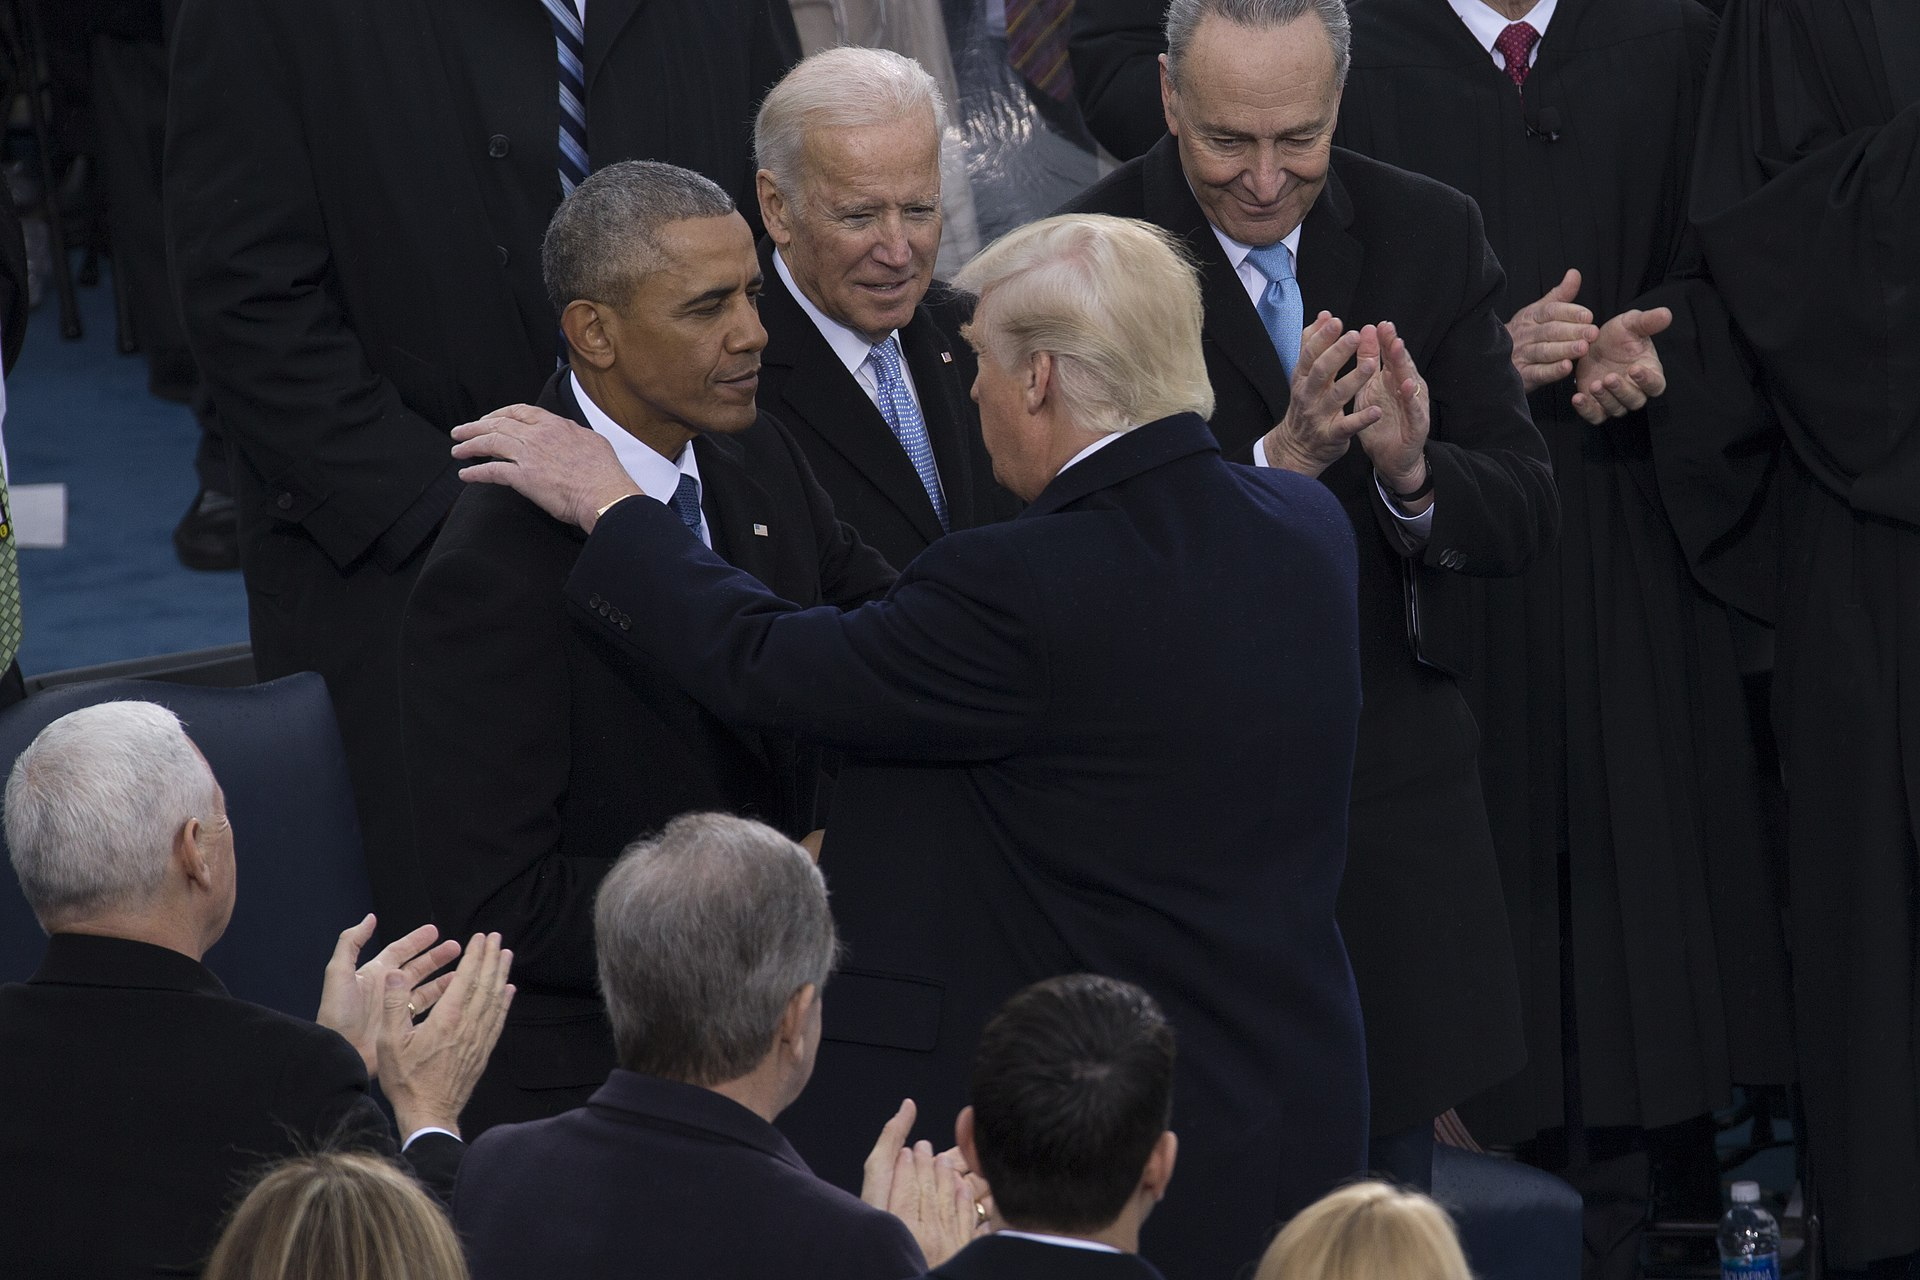 Biden with Barack Obama and Donald Trump, at the latter's inauguration on January 20, 2017